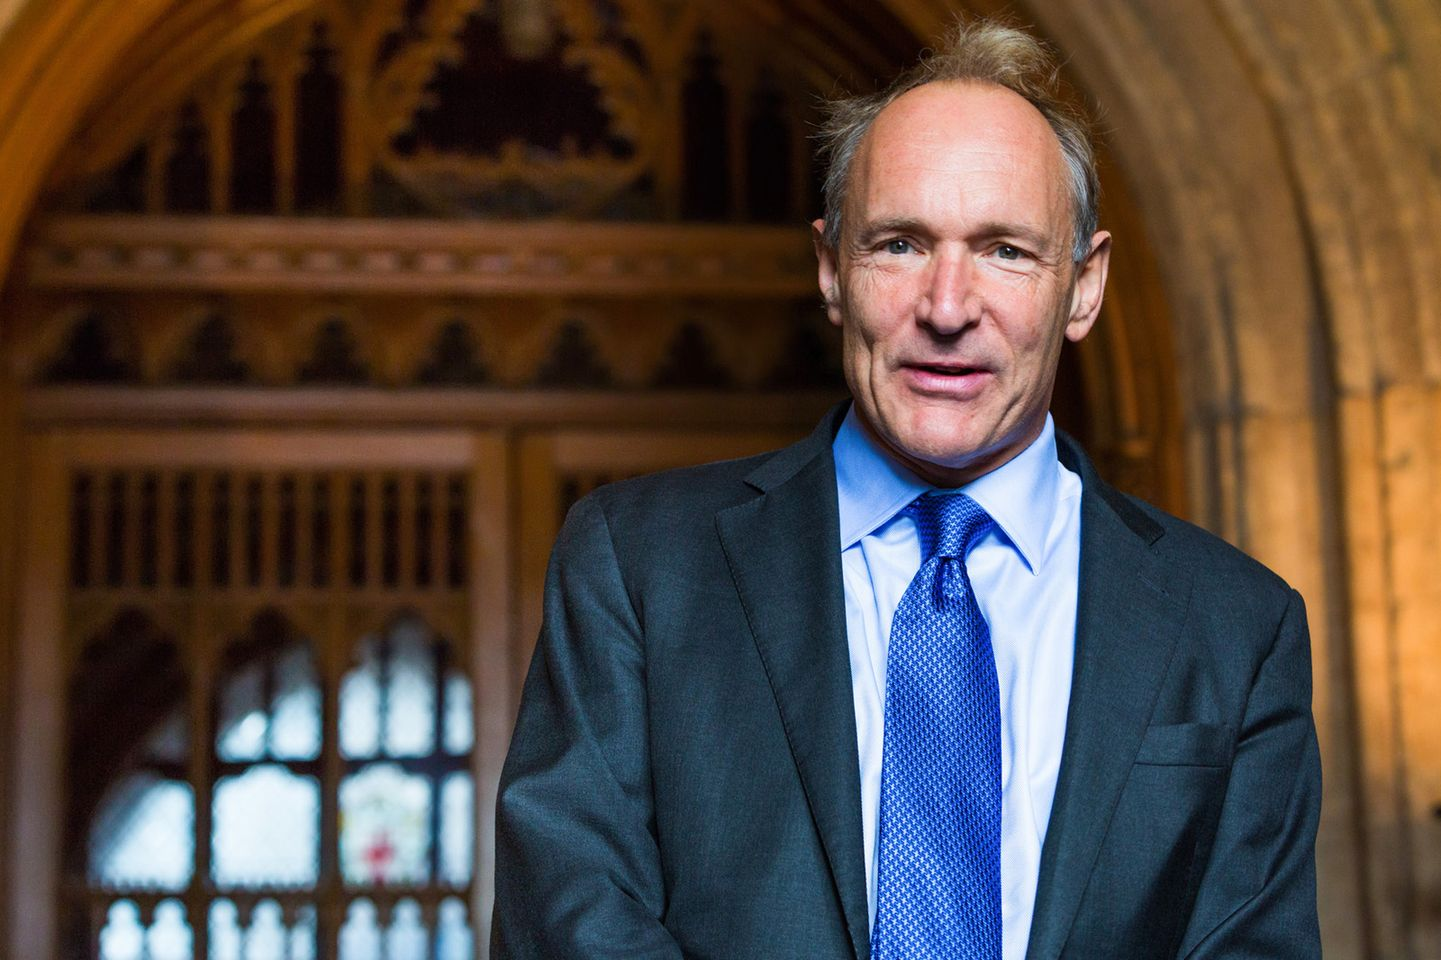 Tim Berners-Lee, inventore del web, lancia Solid